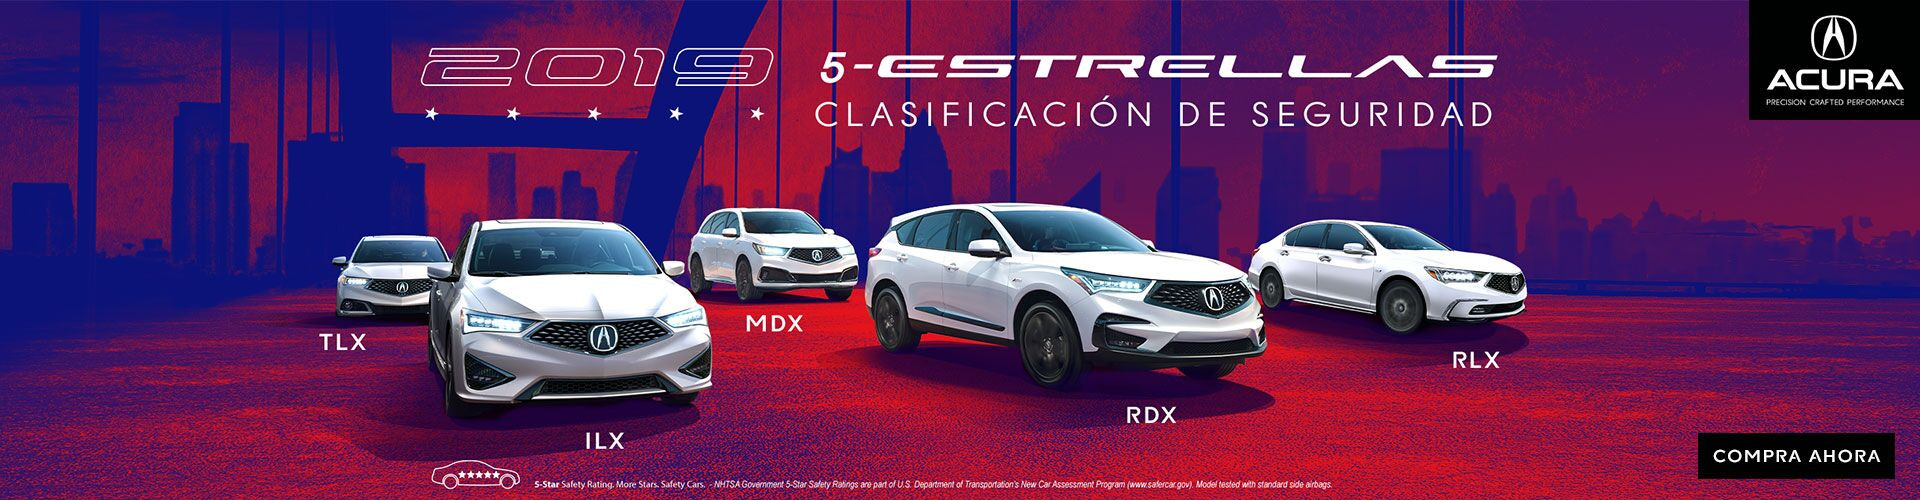 1920x500_19039_Acura_2019-Accolade-Assets_CTROT_LINEUP